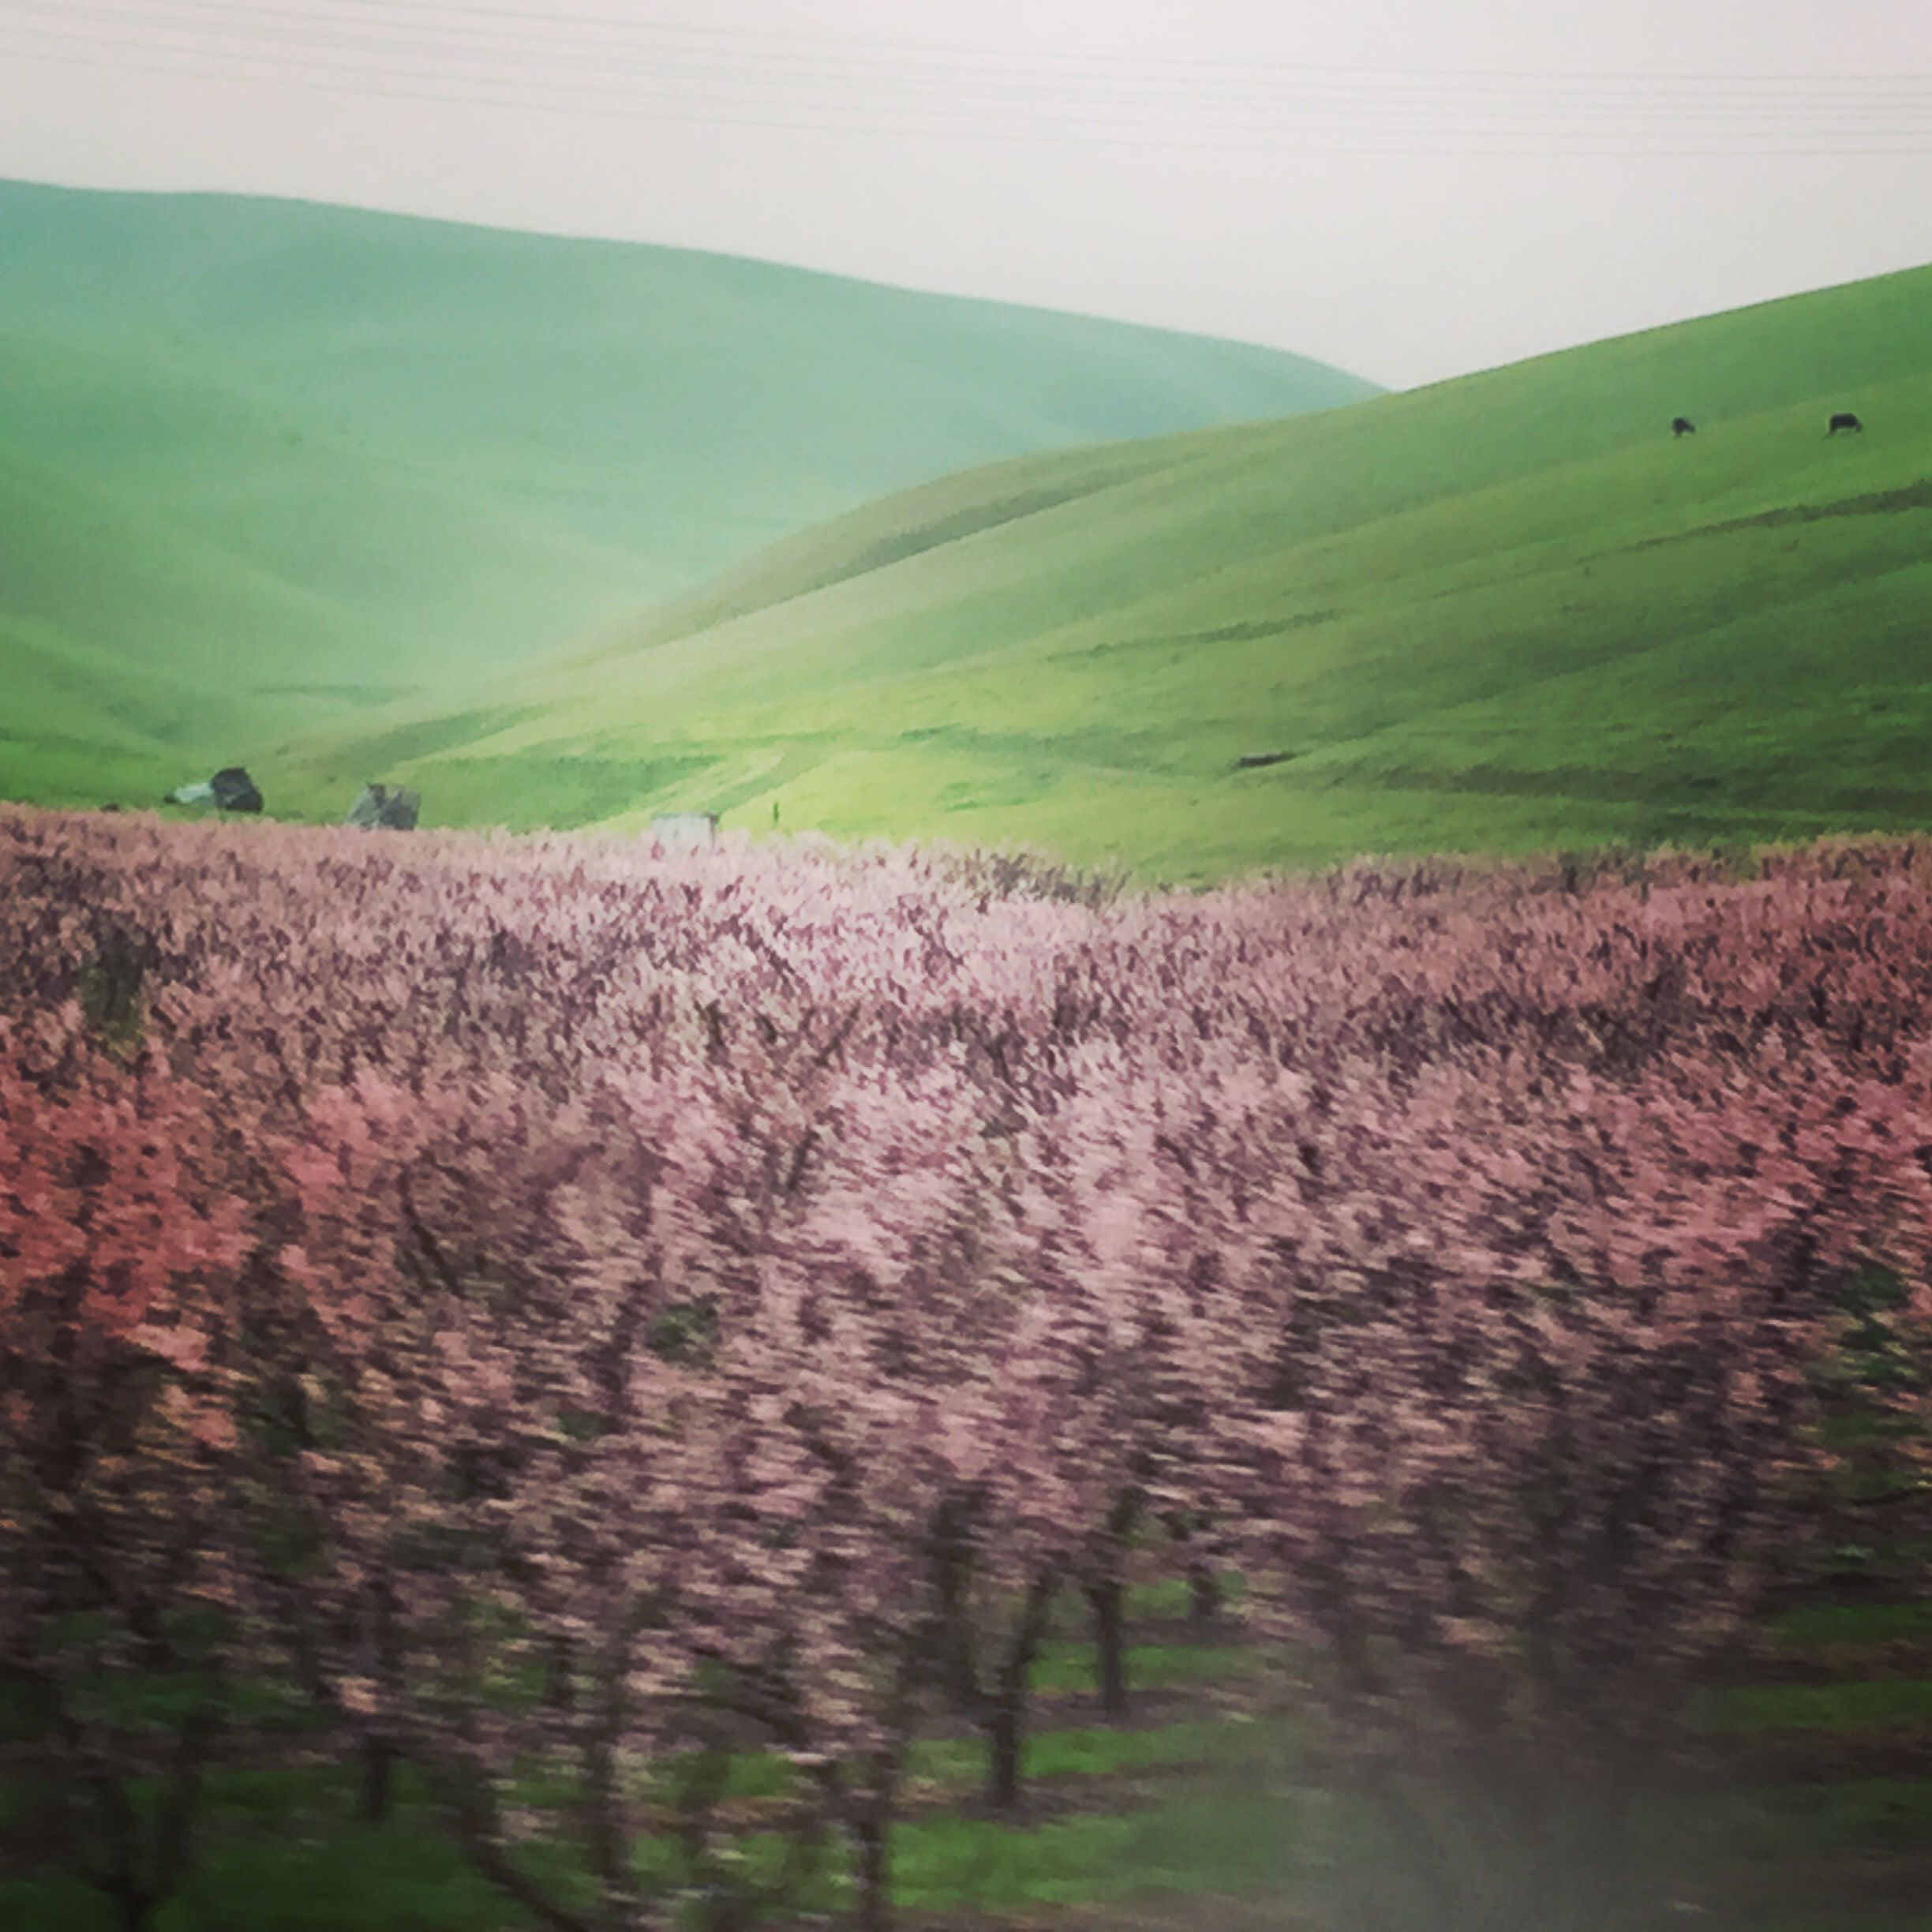 Cherry Blossoms on the Altamont Pass which brings you from the Bay Area into the Central Valley of California where much of the food in our country is grown. It happened to be quite green at the time.